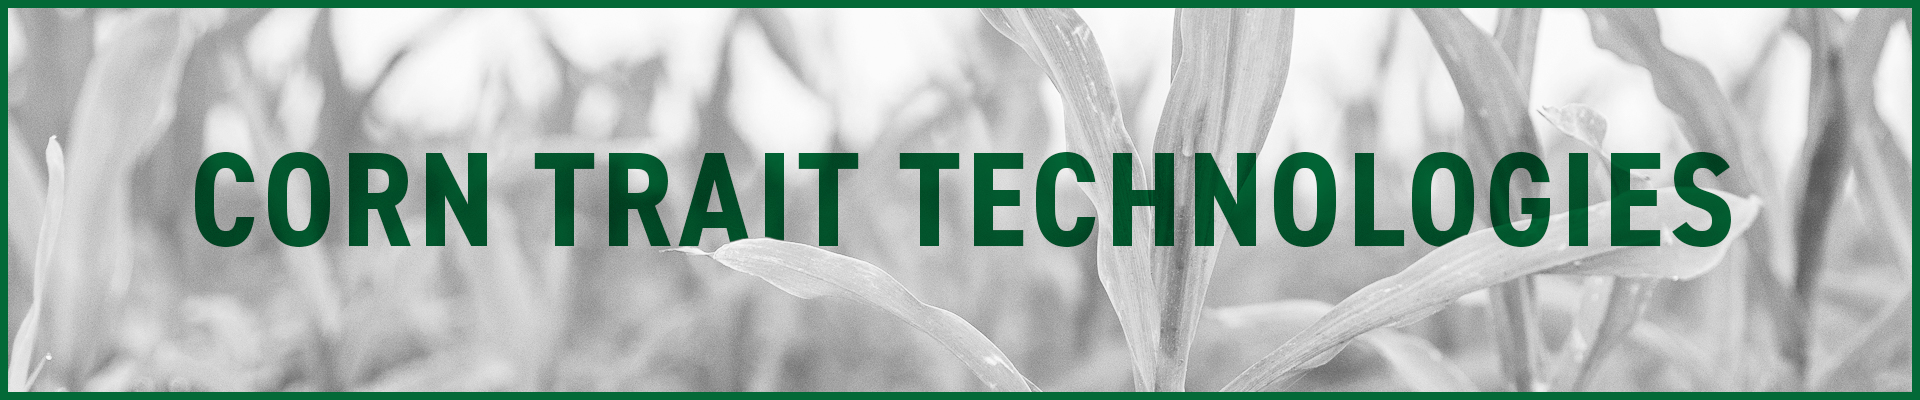 Corn-Trait-Technology